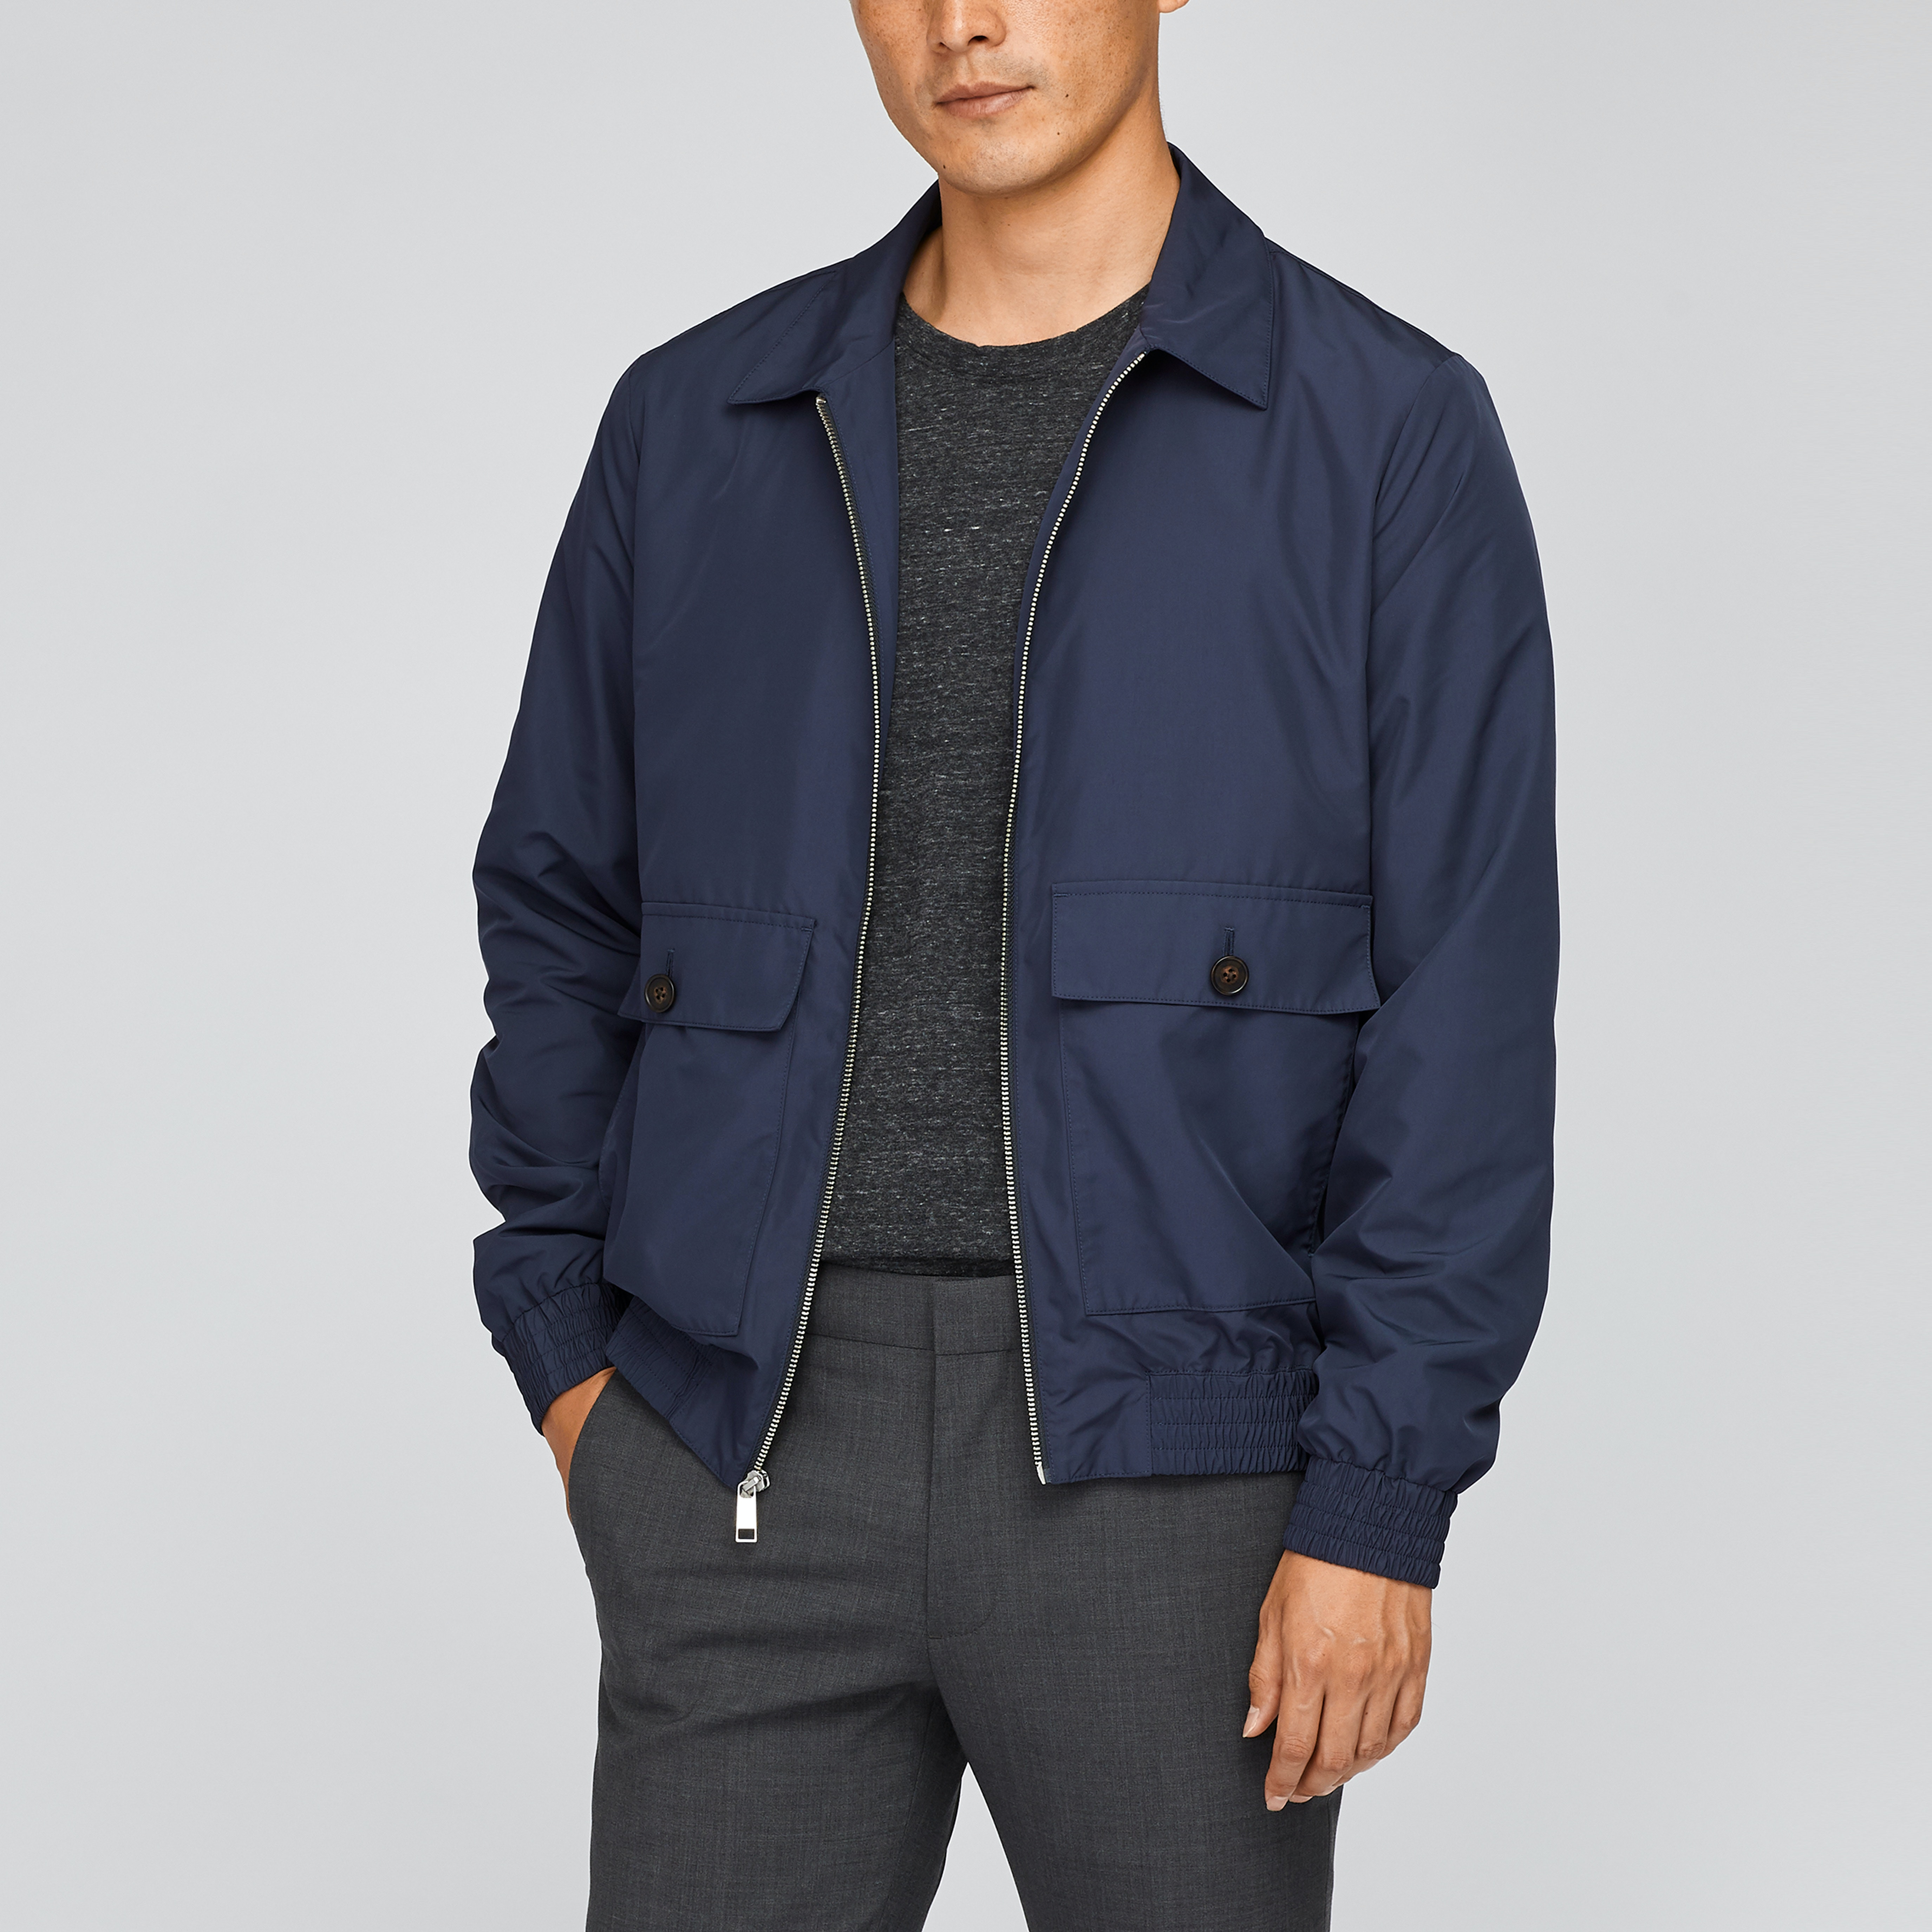 The Lightweight Cotton Jacket